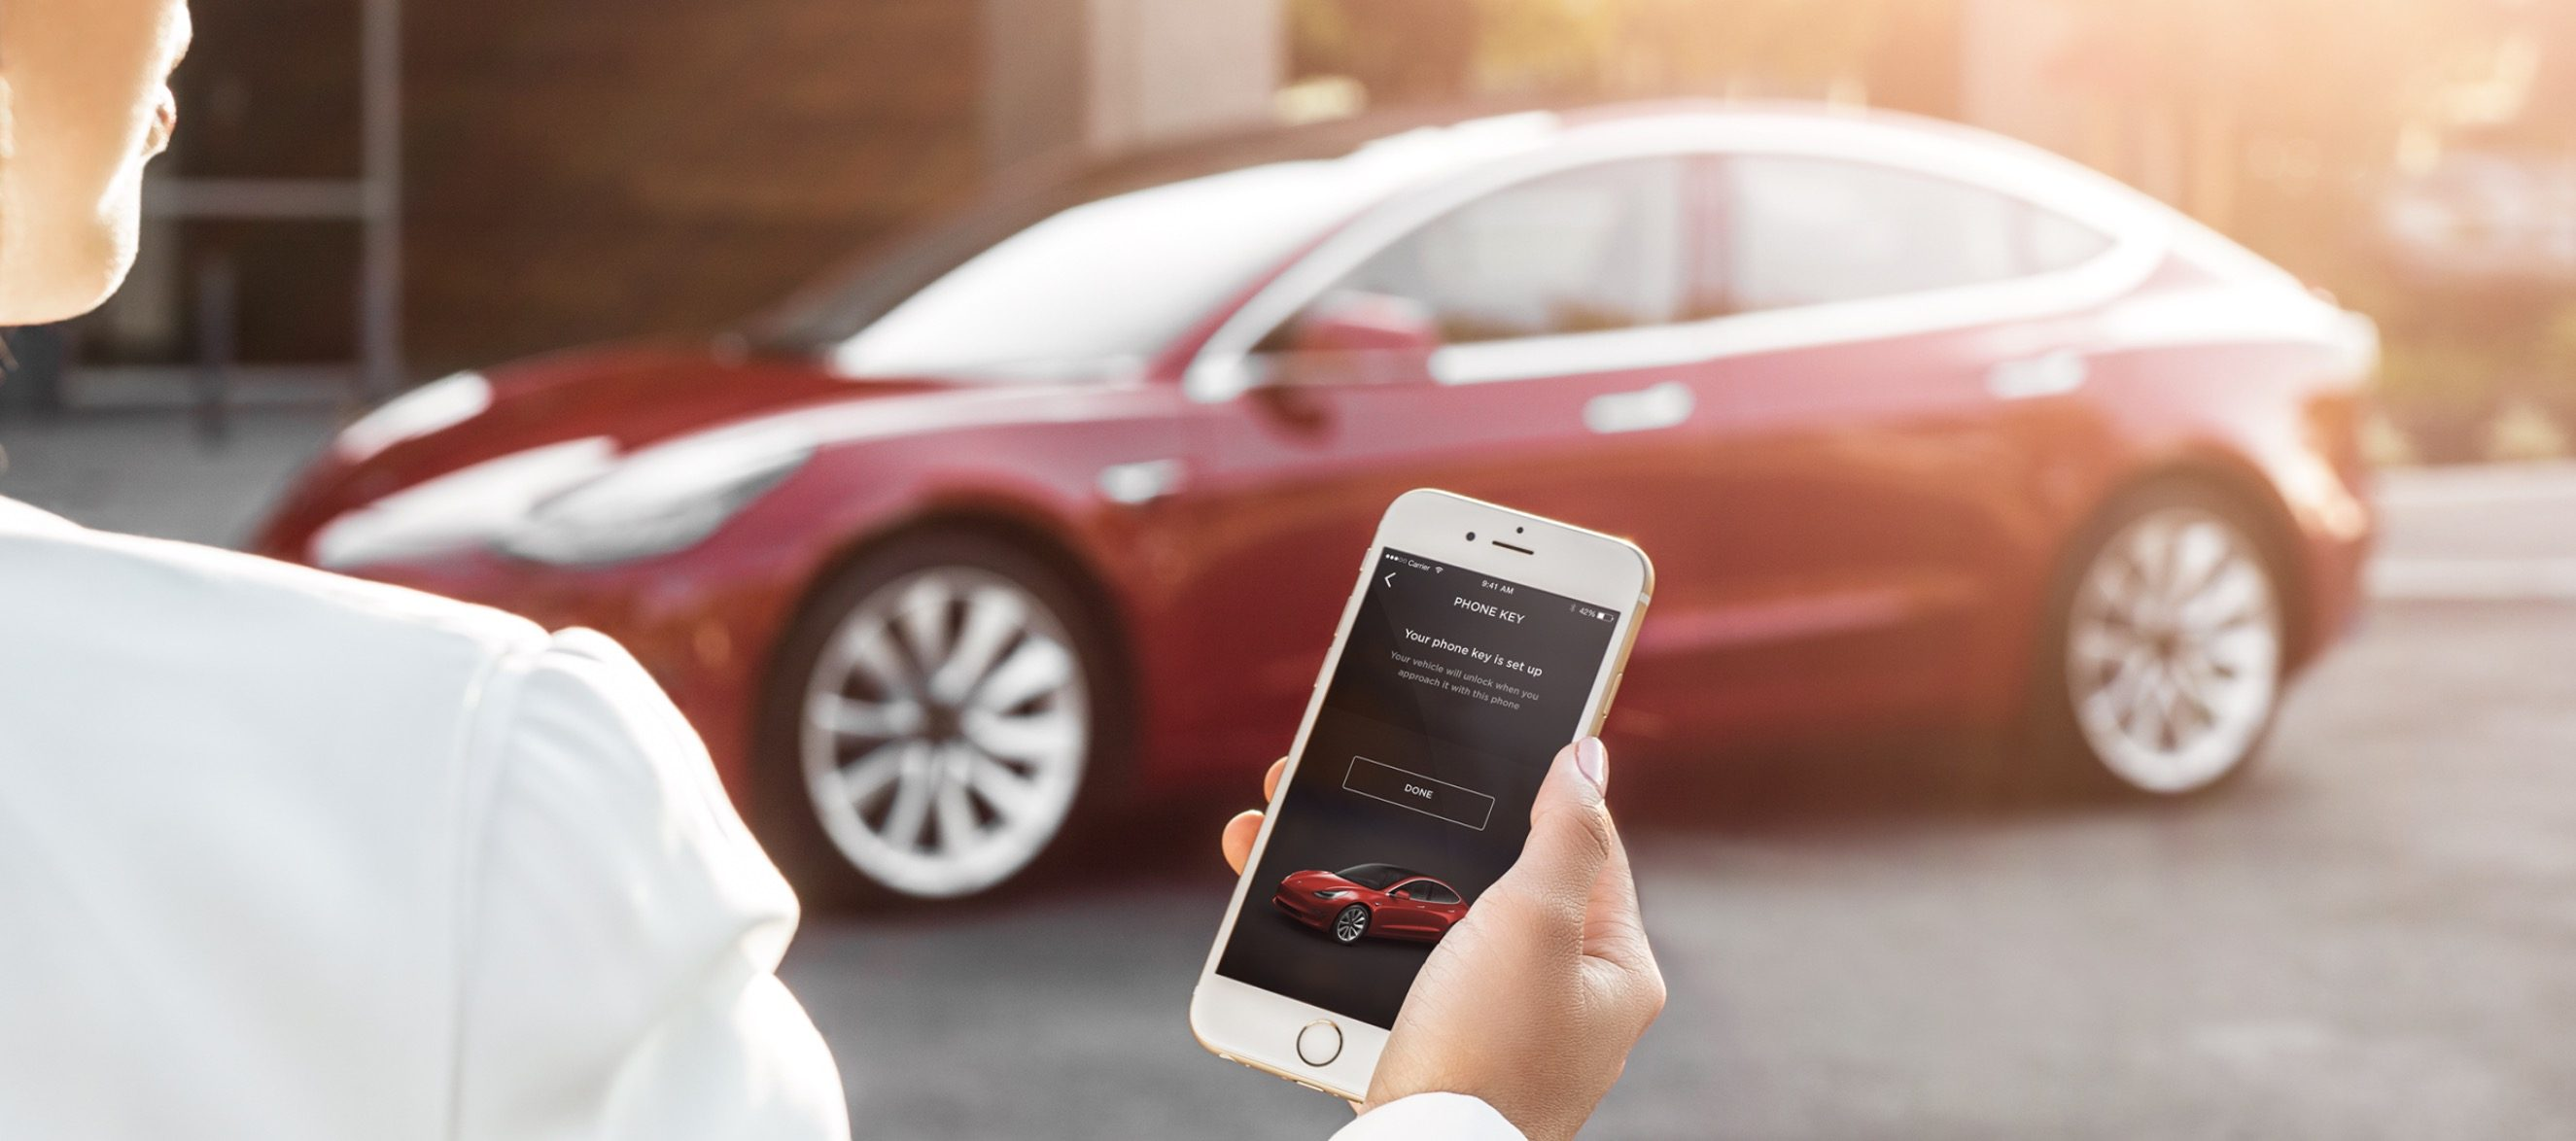 Tesla Model 3 drivers reach over 1 billion electric miles in record time